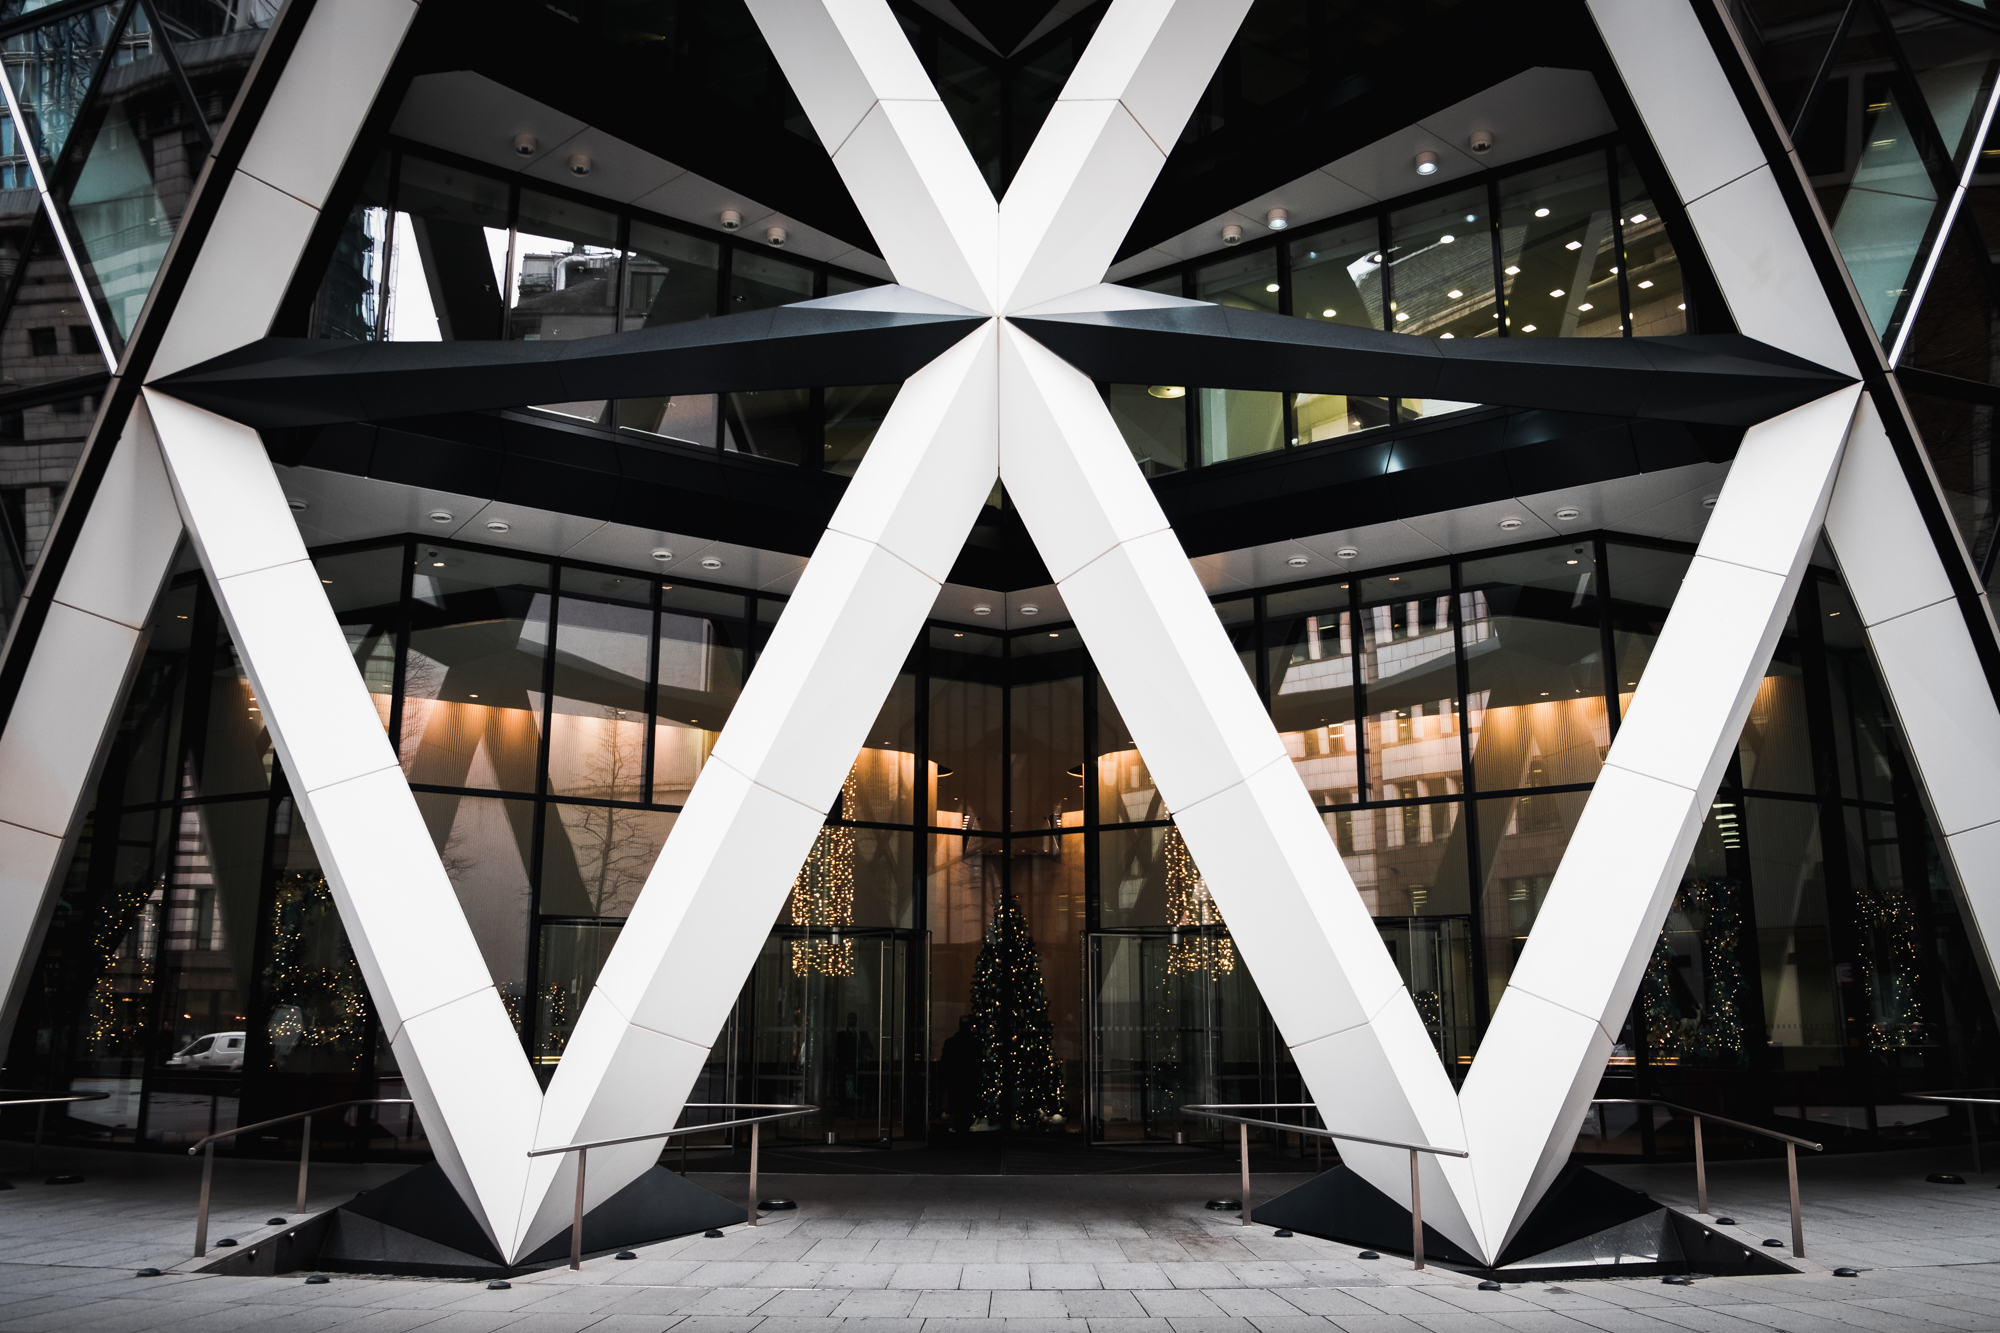 A photo of the main entrance to the Gherkin in London by Trevor Sherwin Photography